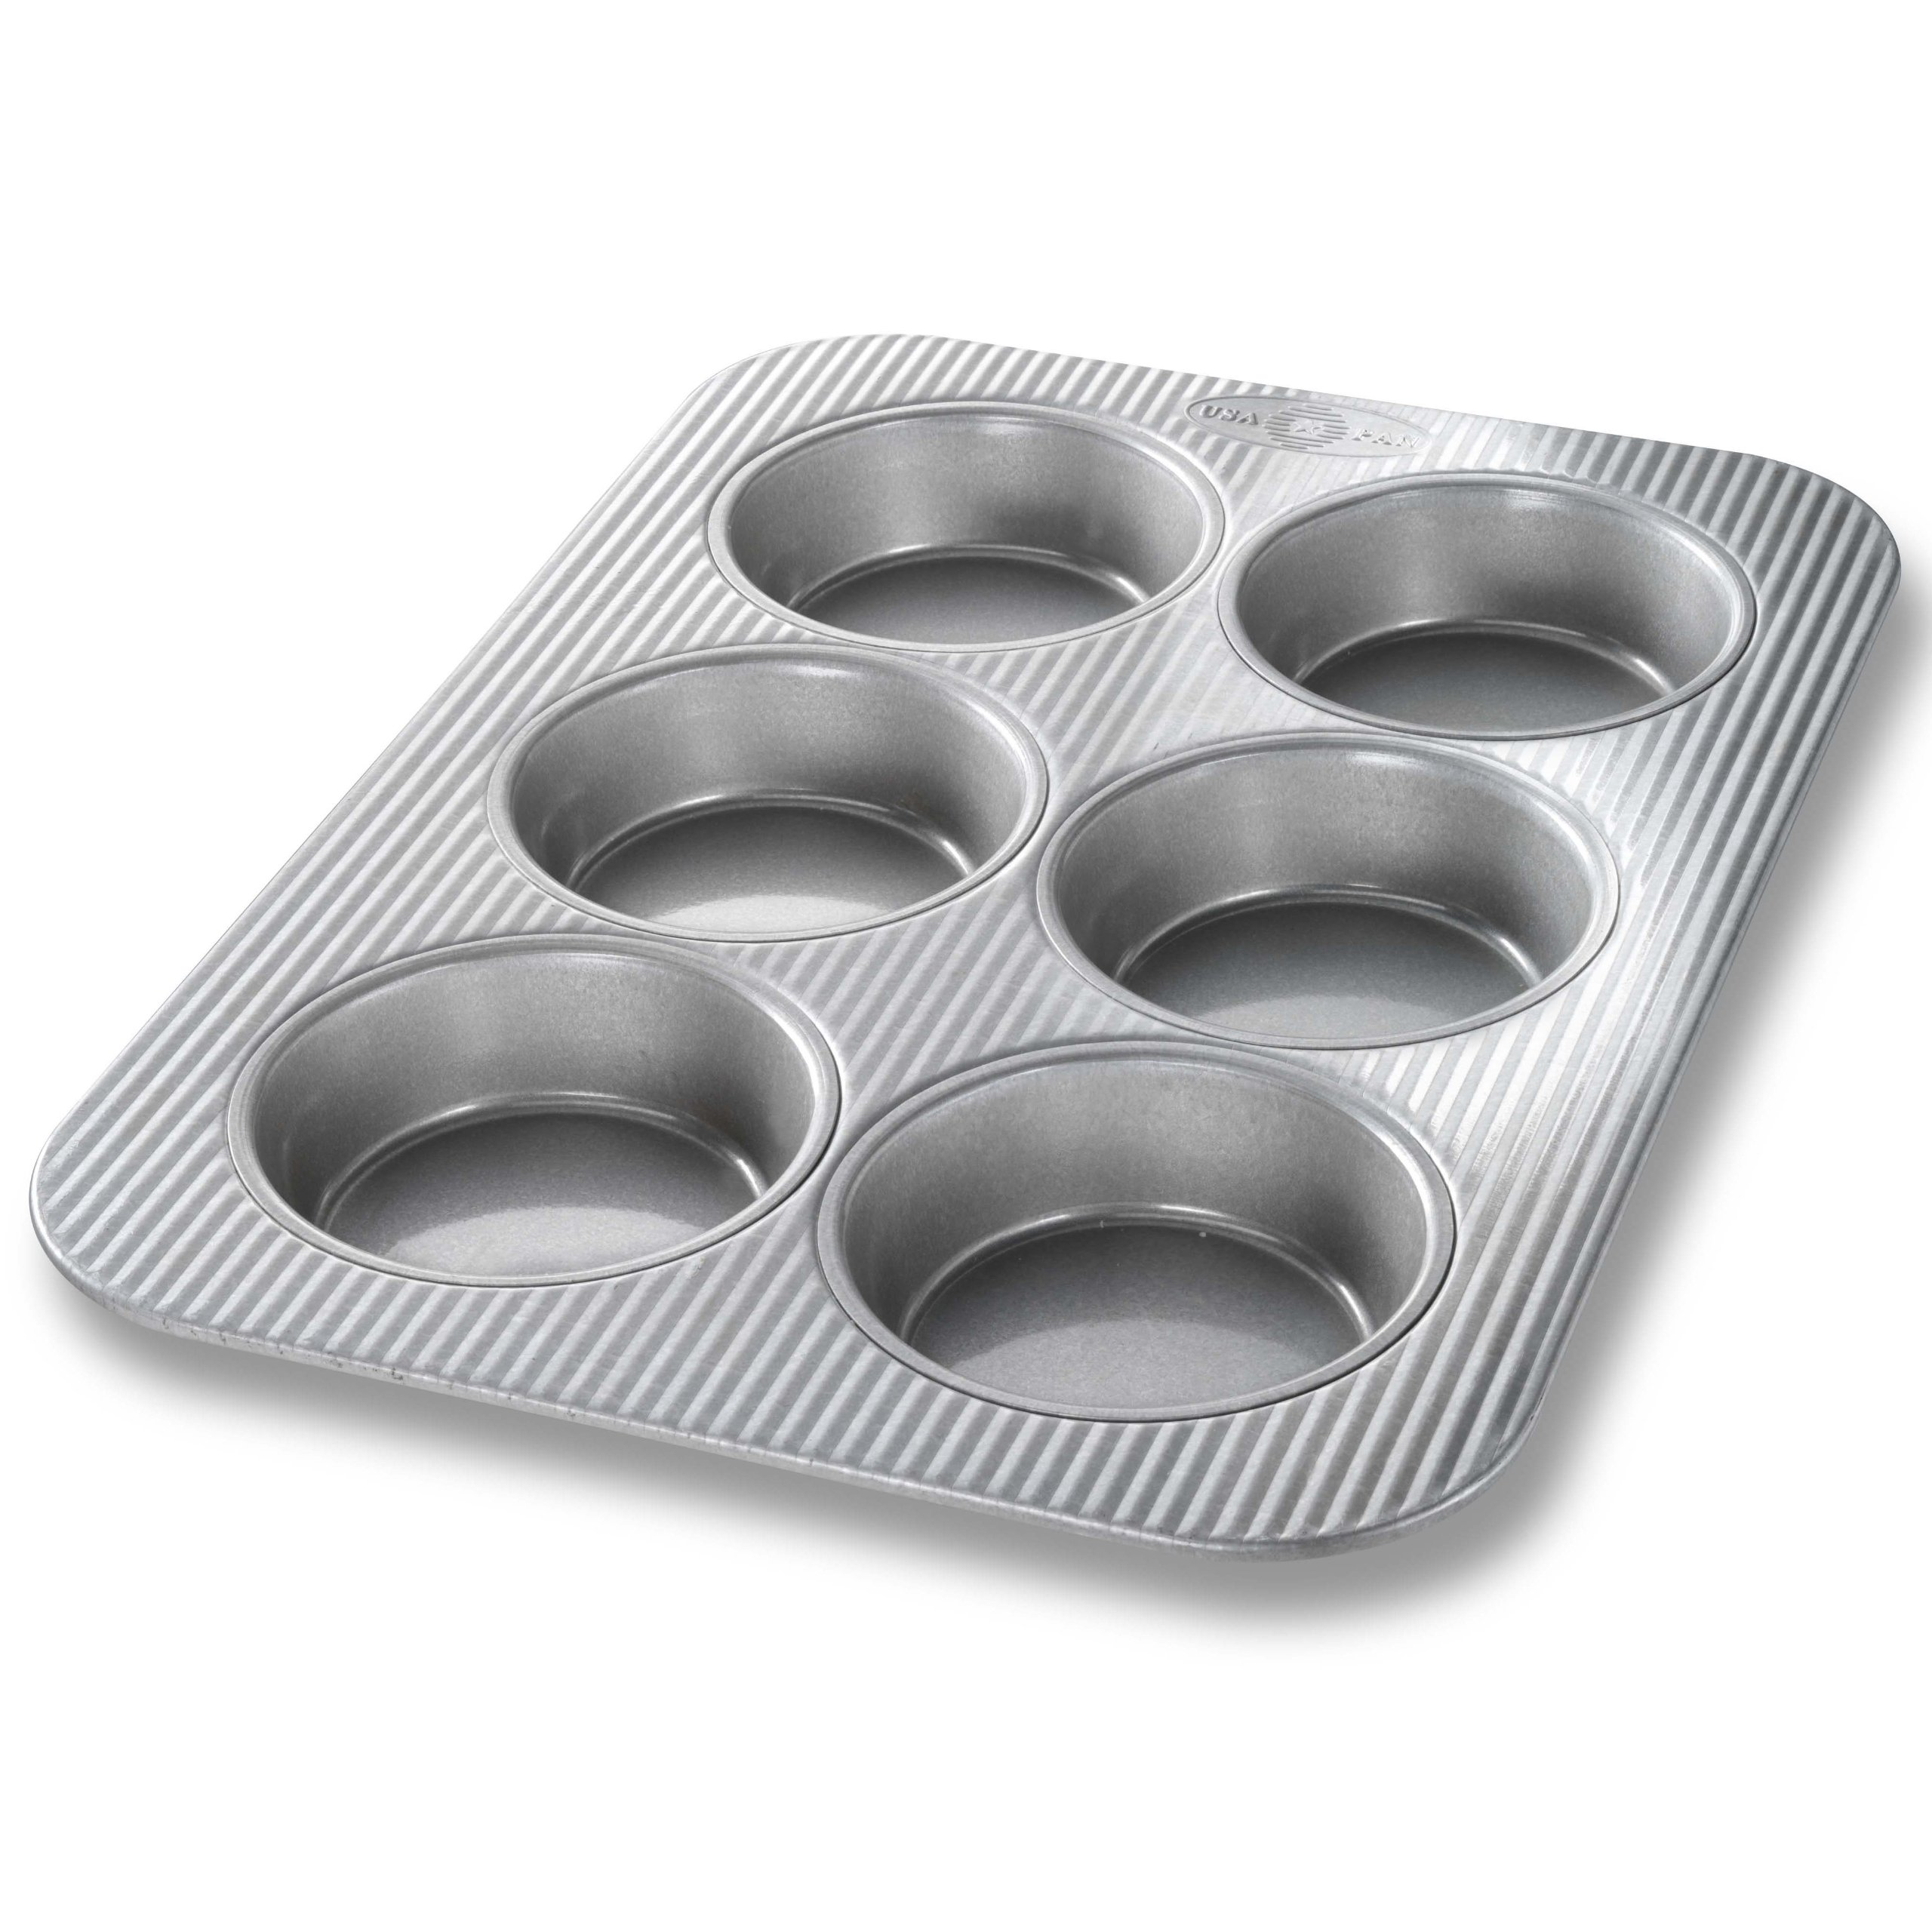 USA Pan Bakeware Mini Round Cake Pans, 6 Well, Nonstick & Quick Release Coating, Made in the USA from Aluminized Steel by USA Pan (Image #1)